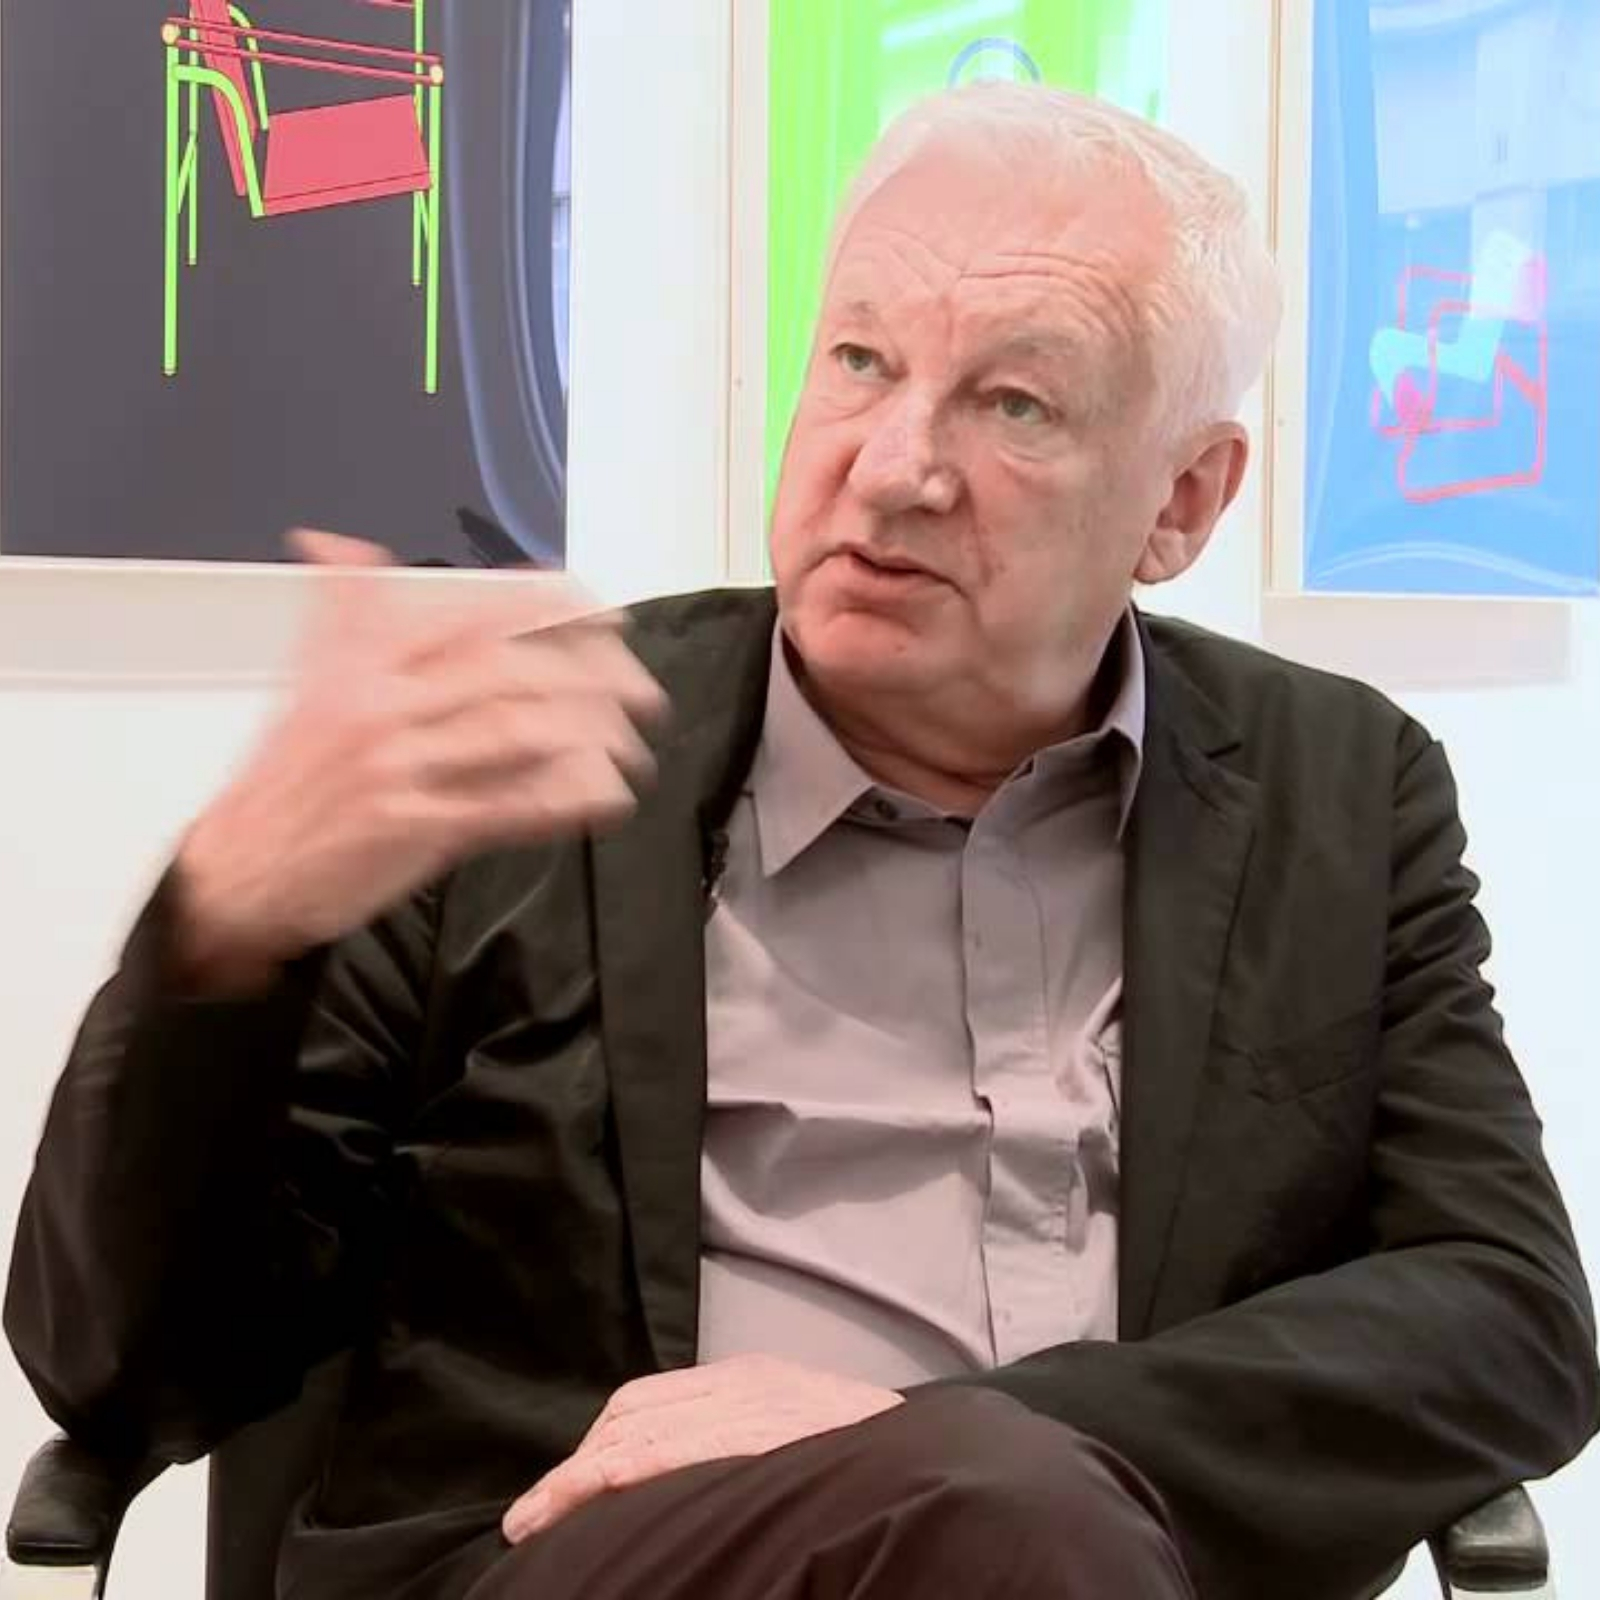 Michael Craig-Martin video